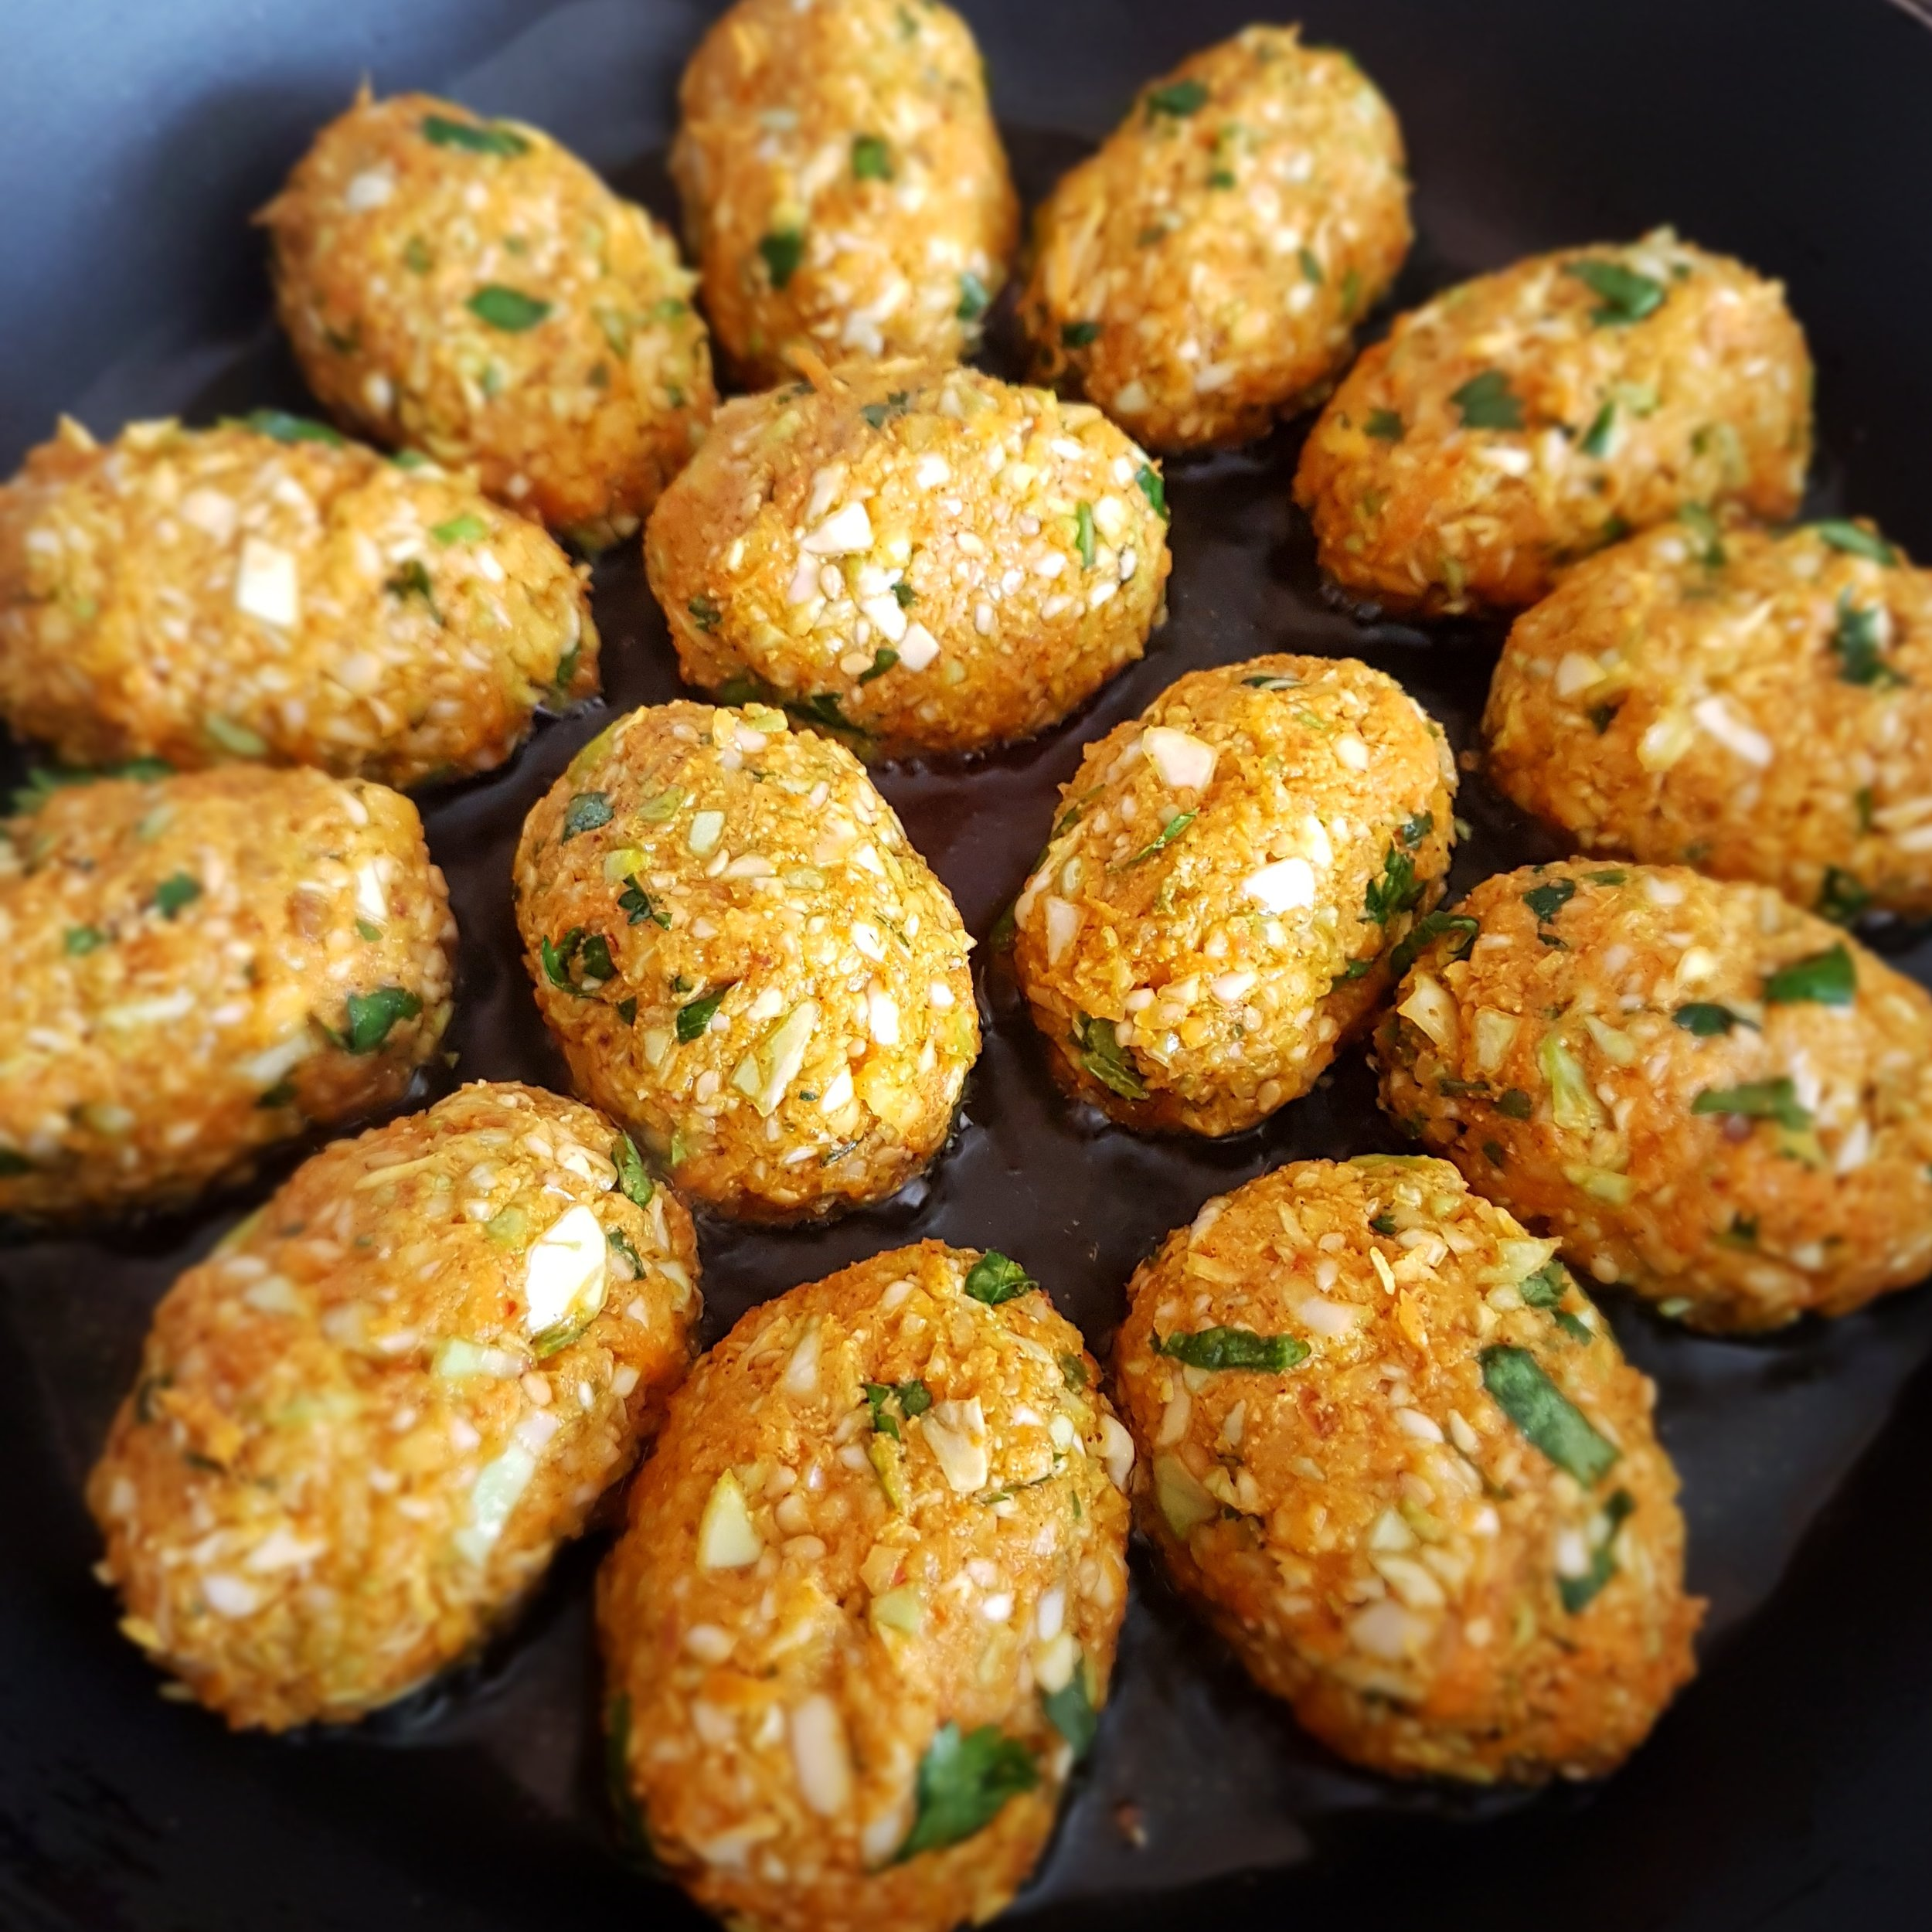 These kebabs/fritters were made with white cabbage which was shredded in a food processor